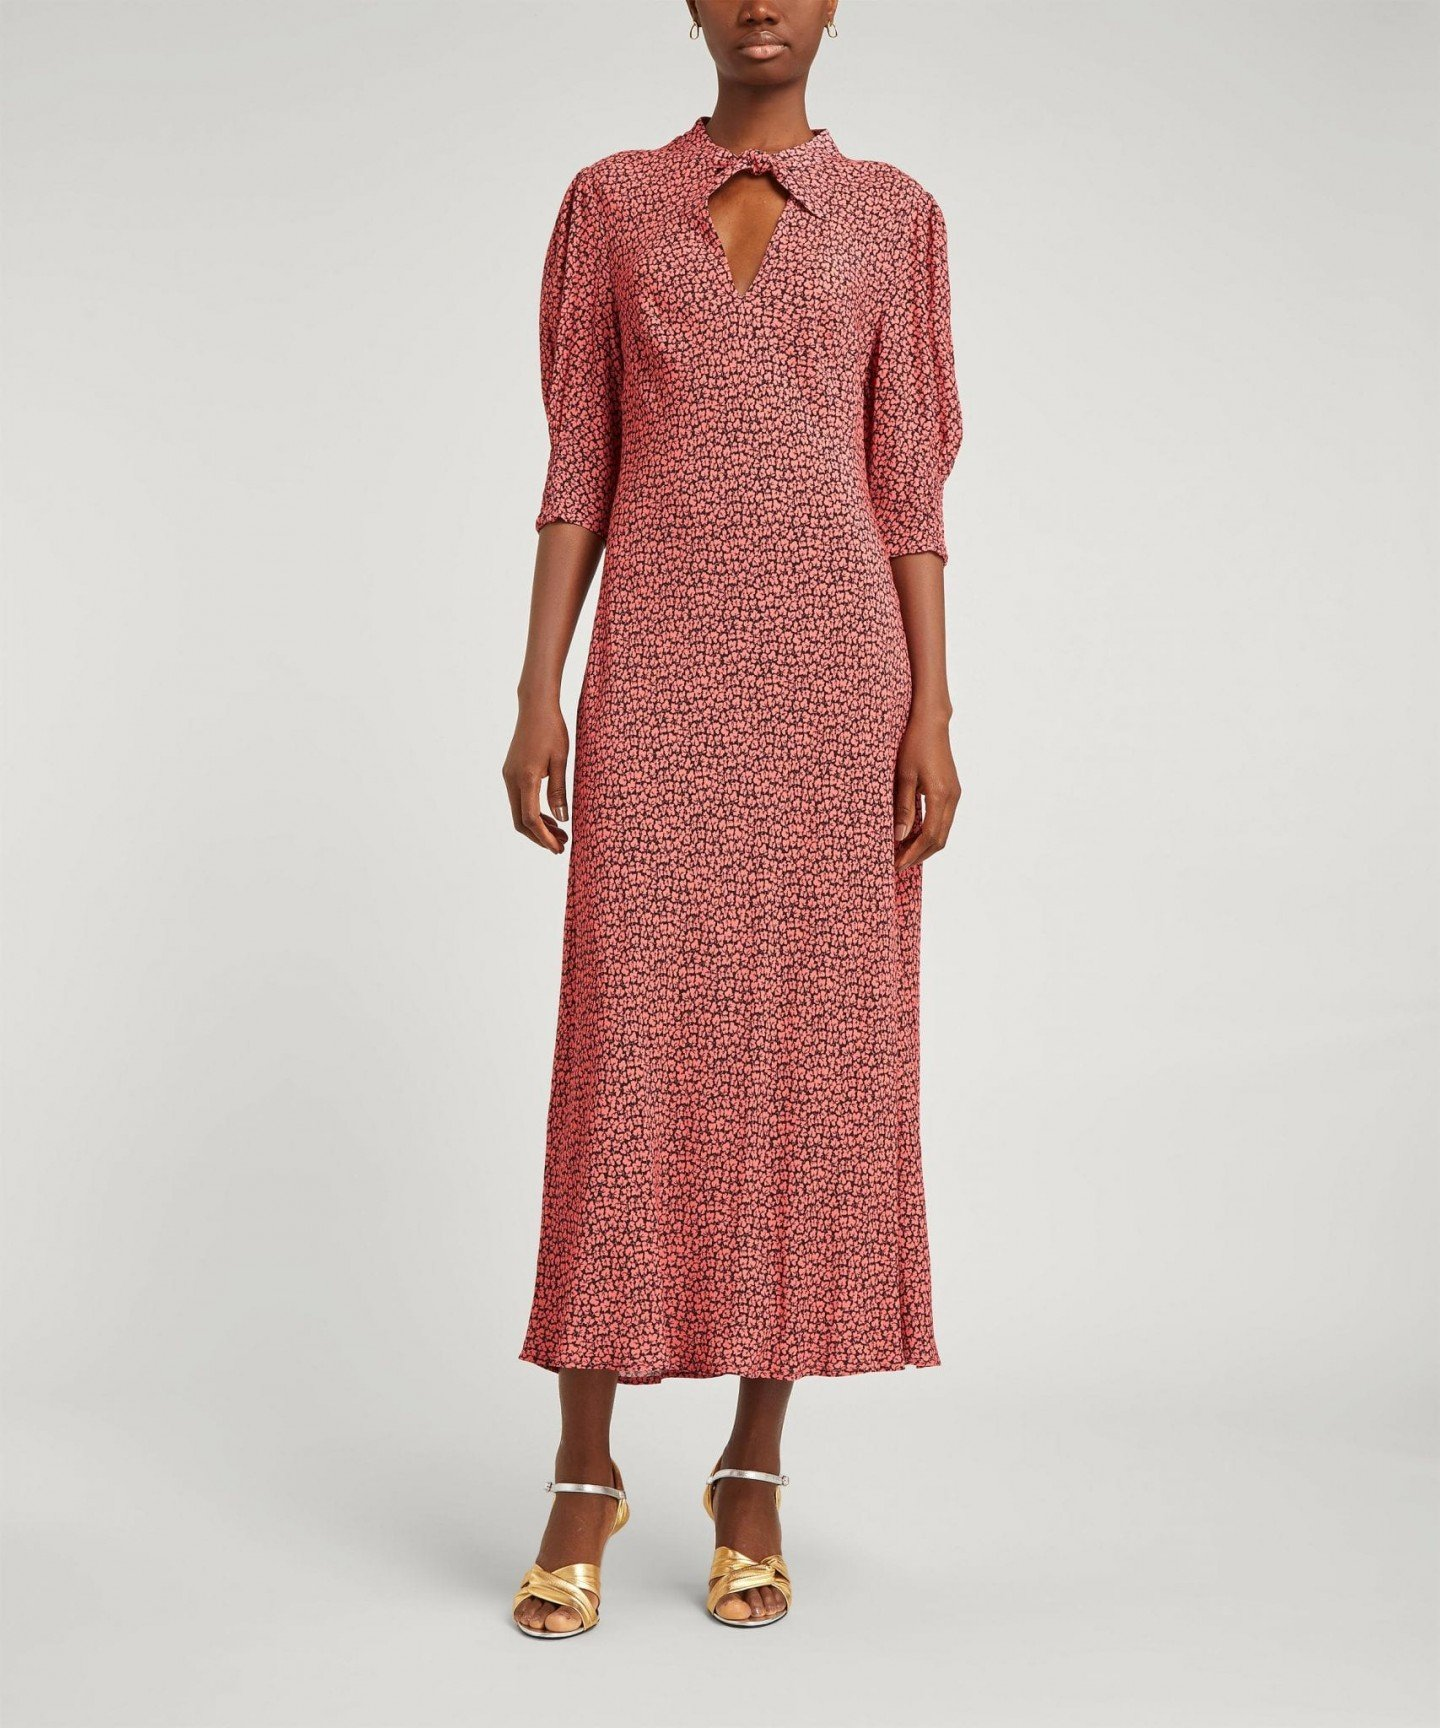 RIXO Isabella Tie-Neck Midi-Dress